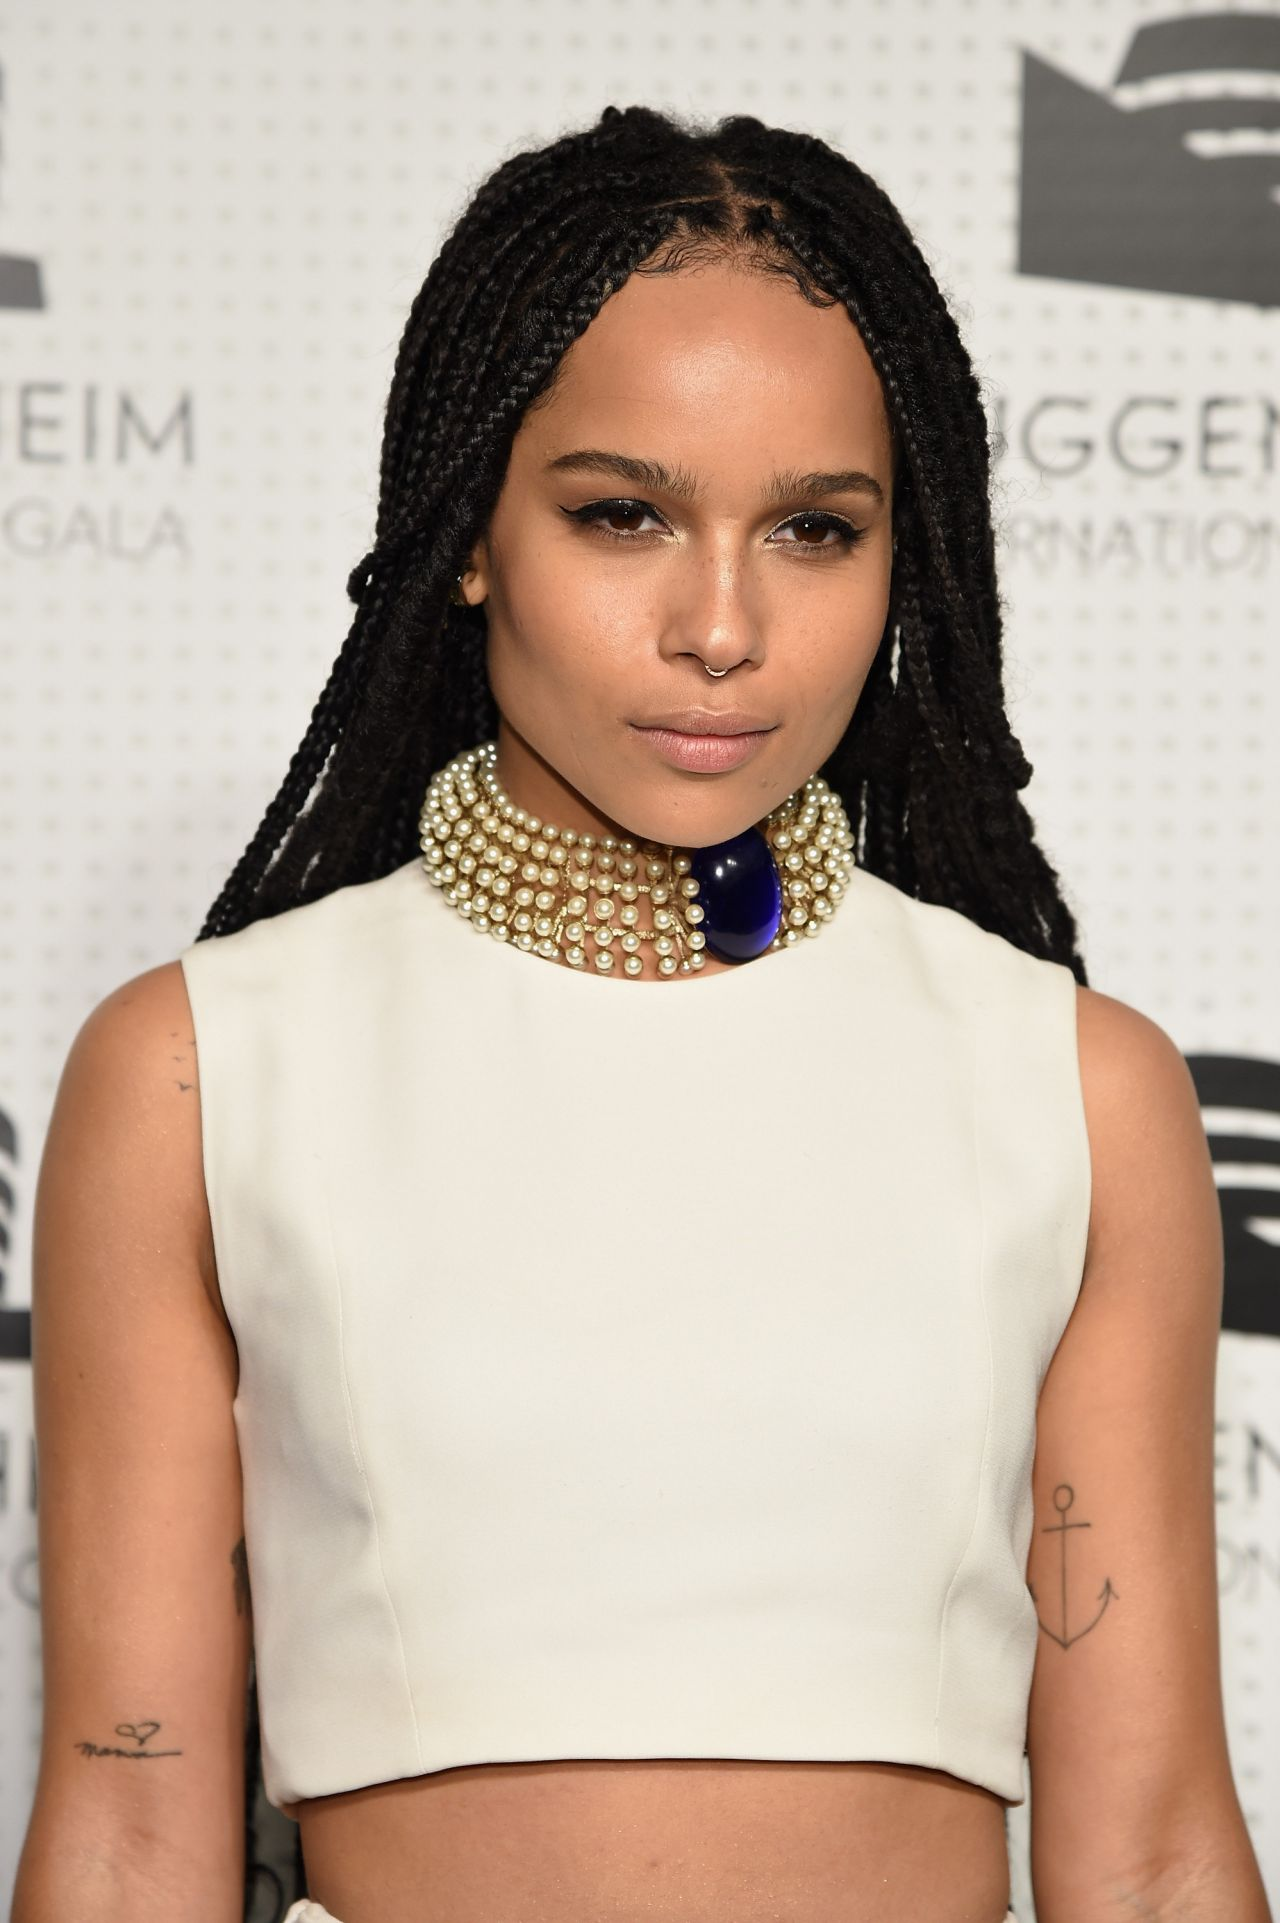 Zoe Kravitz - Guggenheim International Gala Dinner in New York City - November 2014